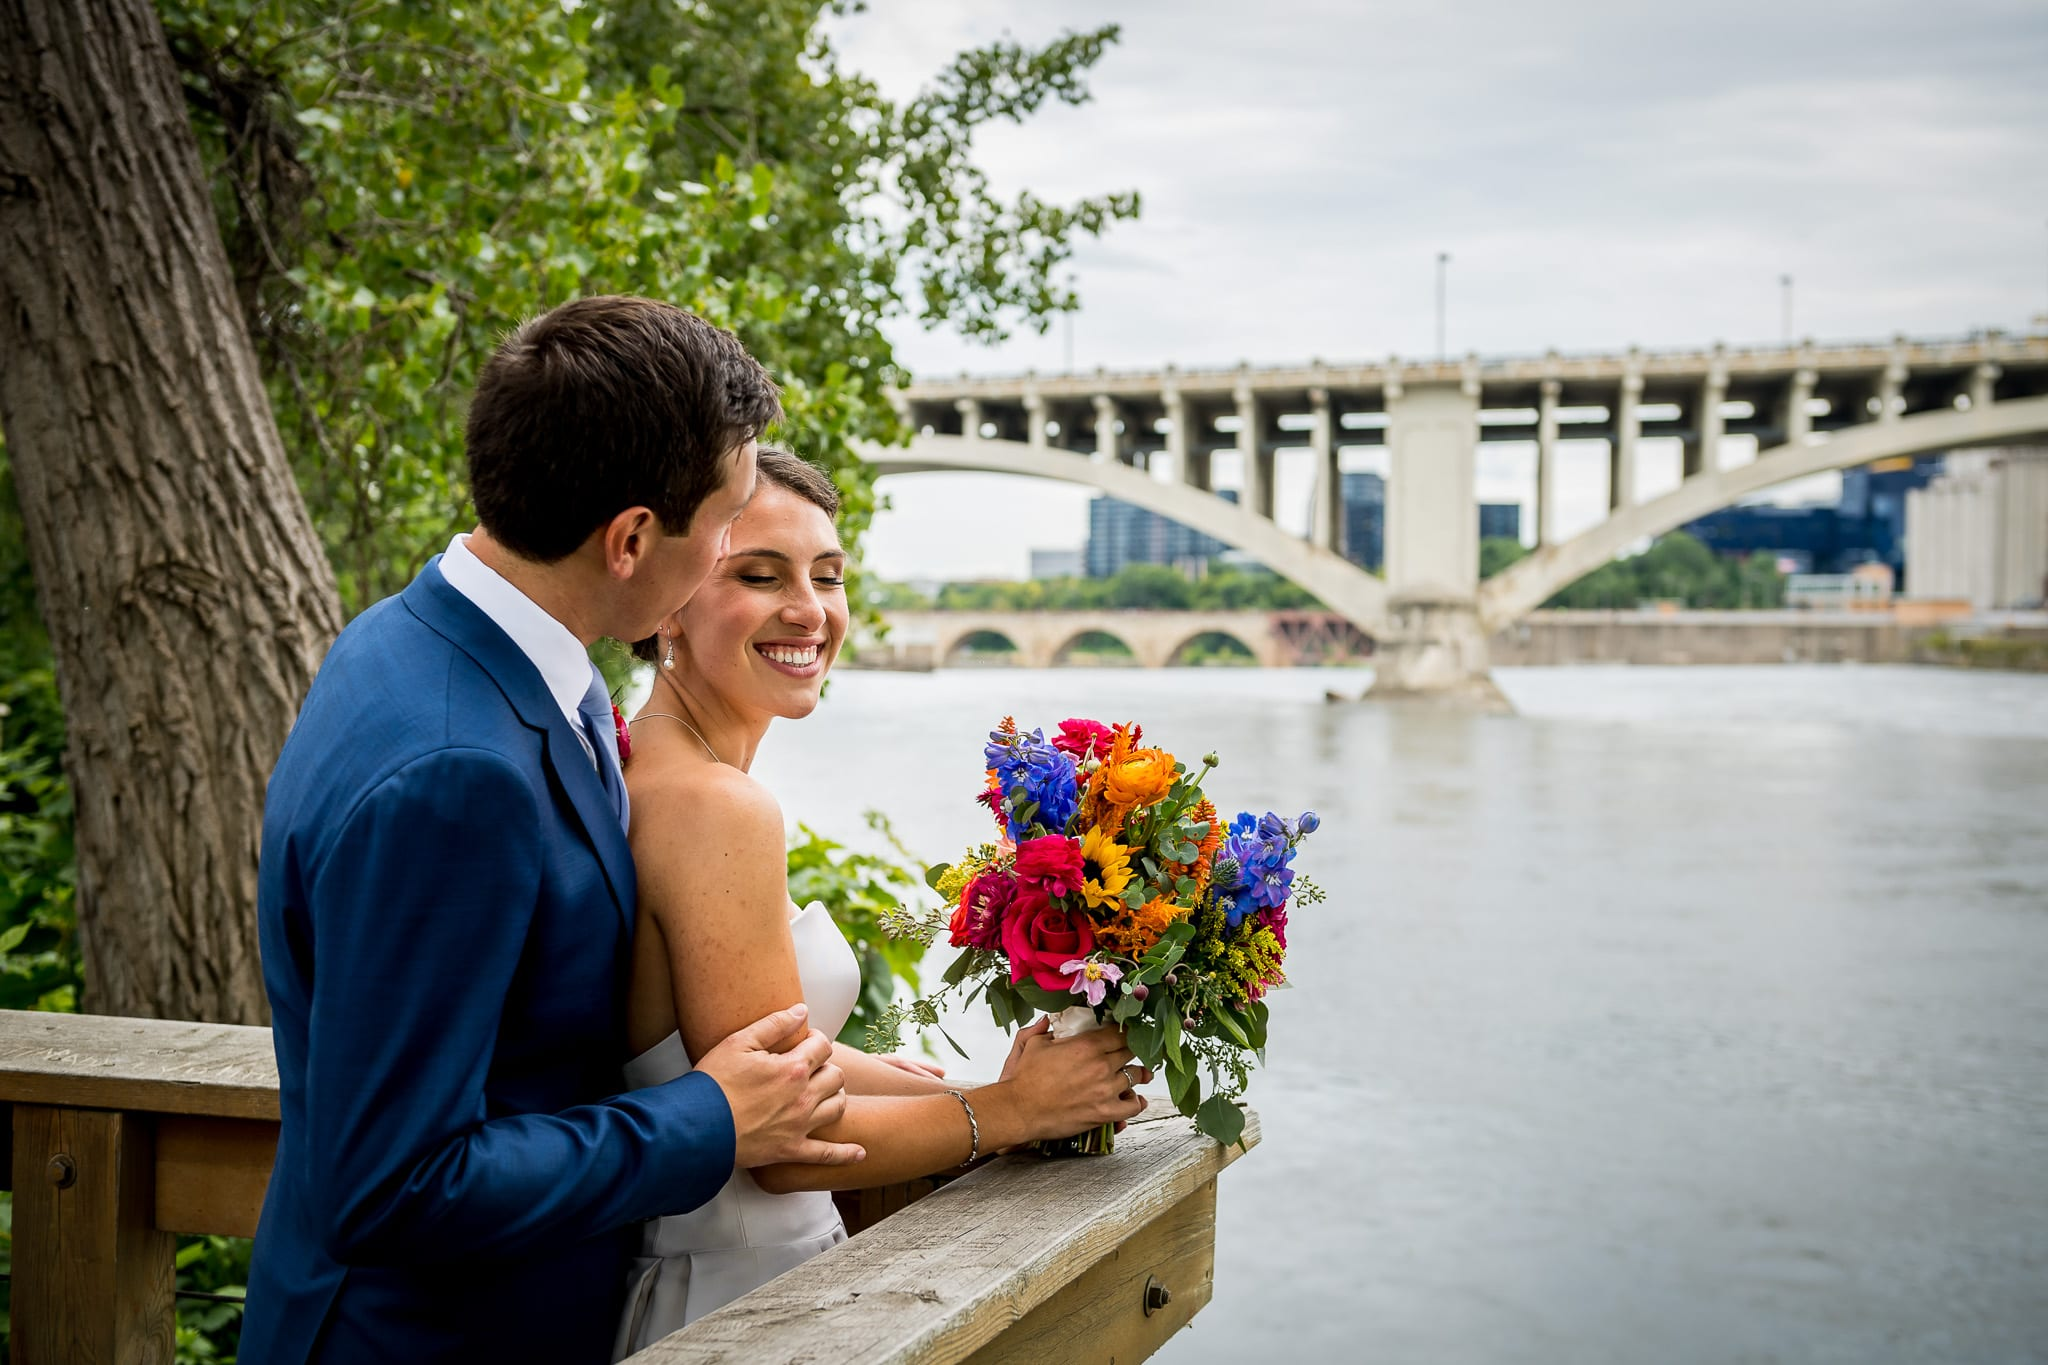 Groom whispers in his bride's ear as they overlook the Mississippi River with the Central Avenue Bridge and Minneapolis in the background on their wedding day